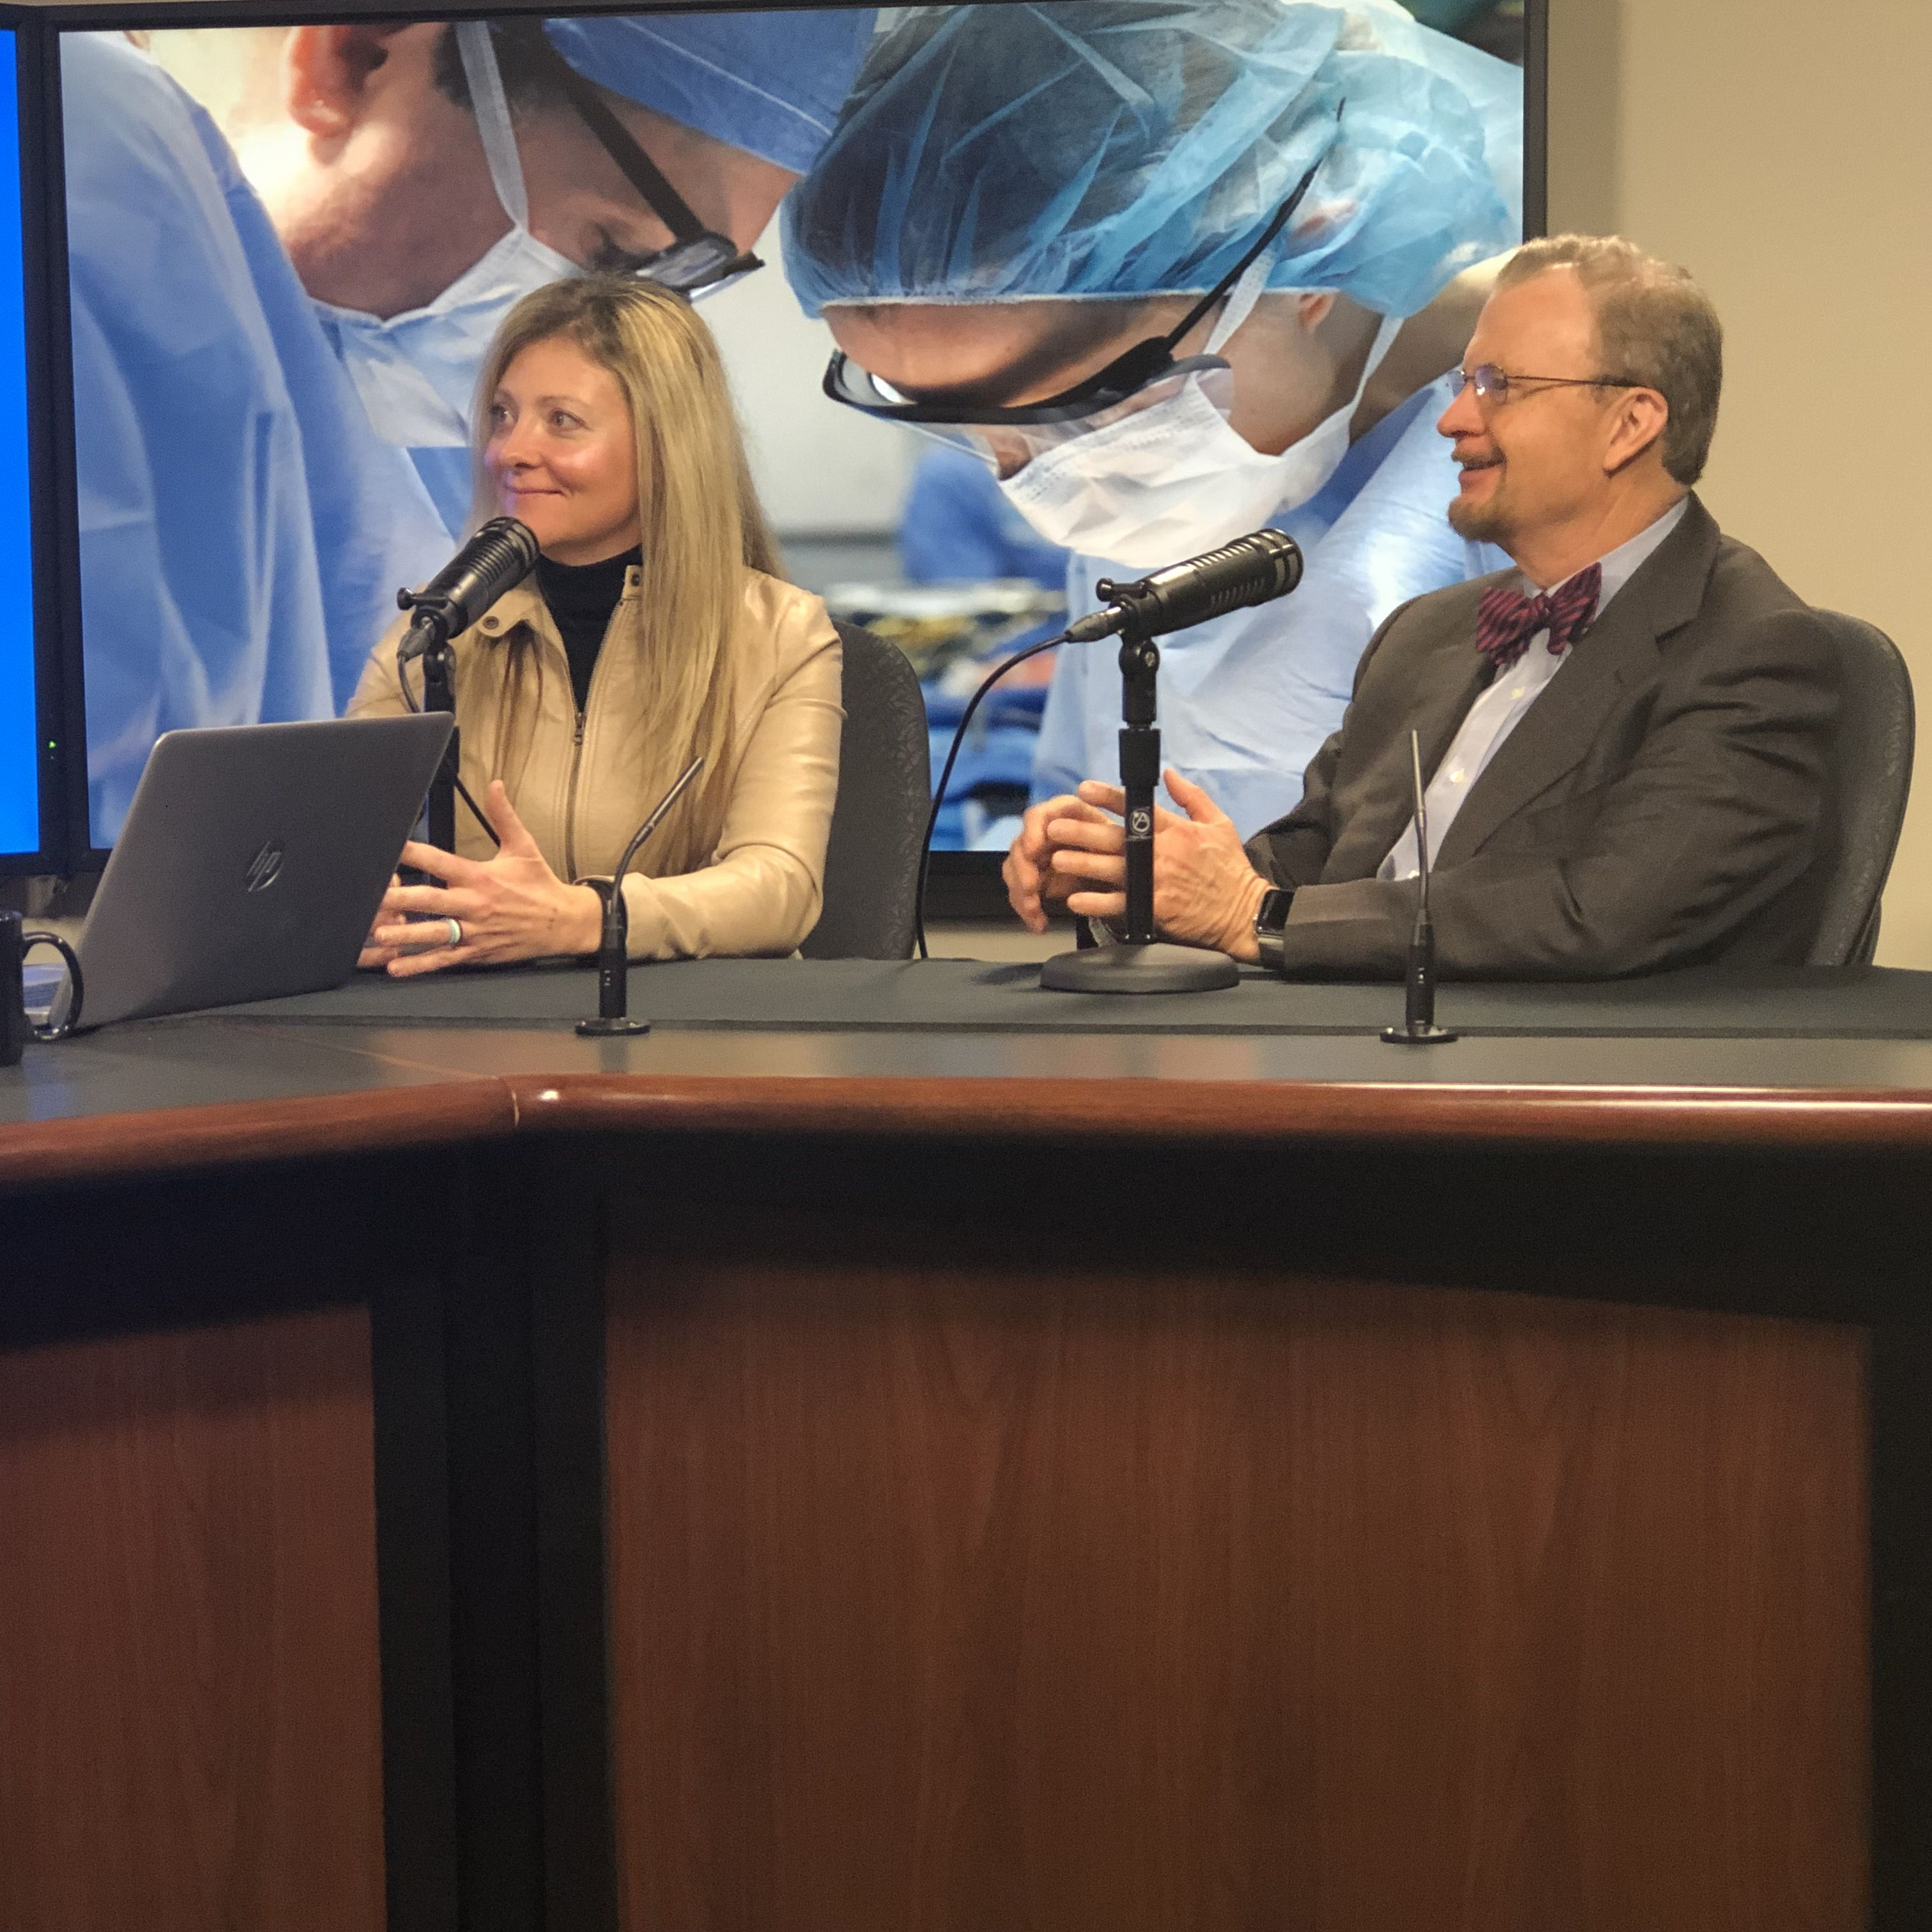 Mollie Luhman and Dr  Mark Stegall being interviewed on Mayo Clinic